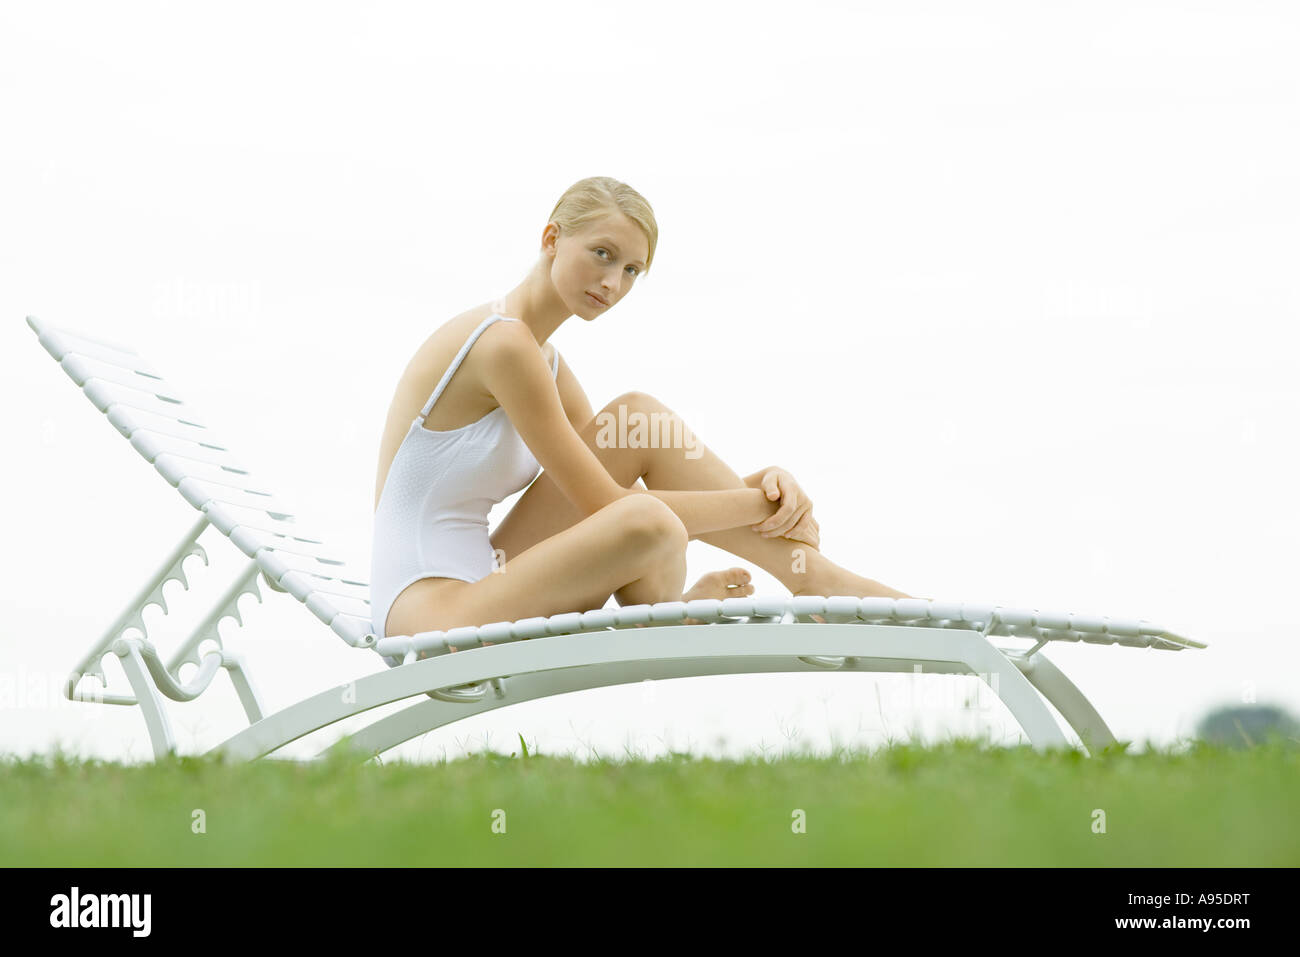 Teenage girl in swimsuit sitting on lounge chair - Stock Image